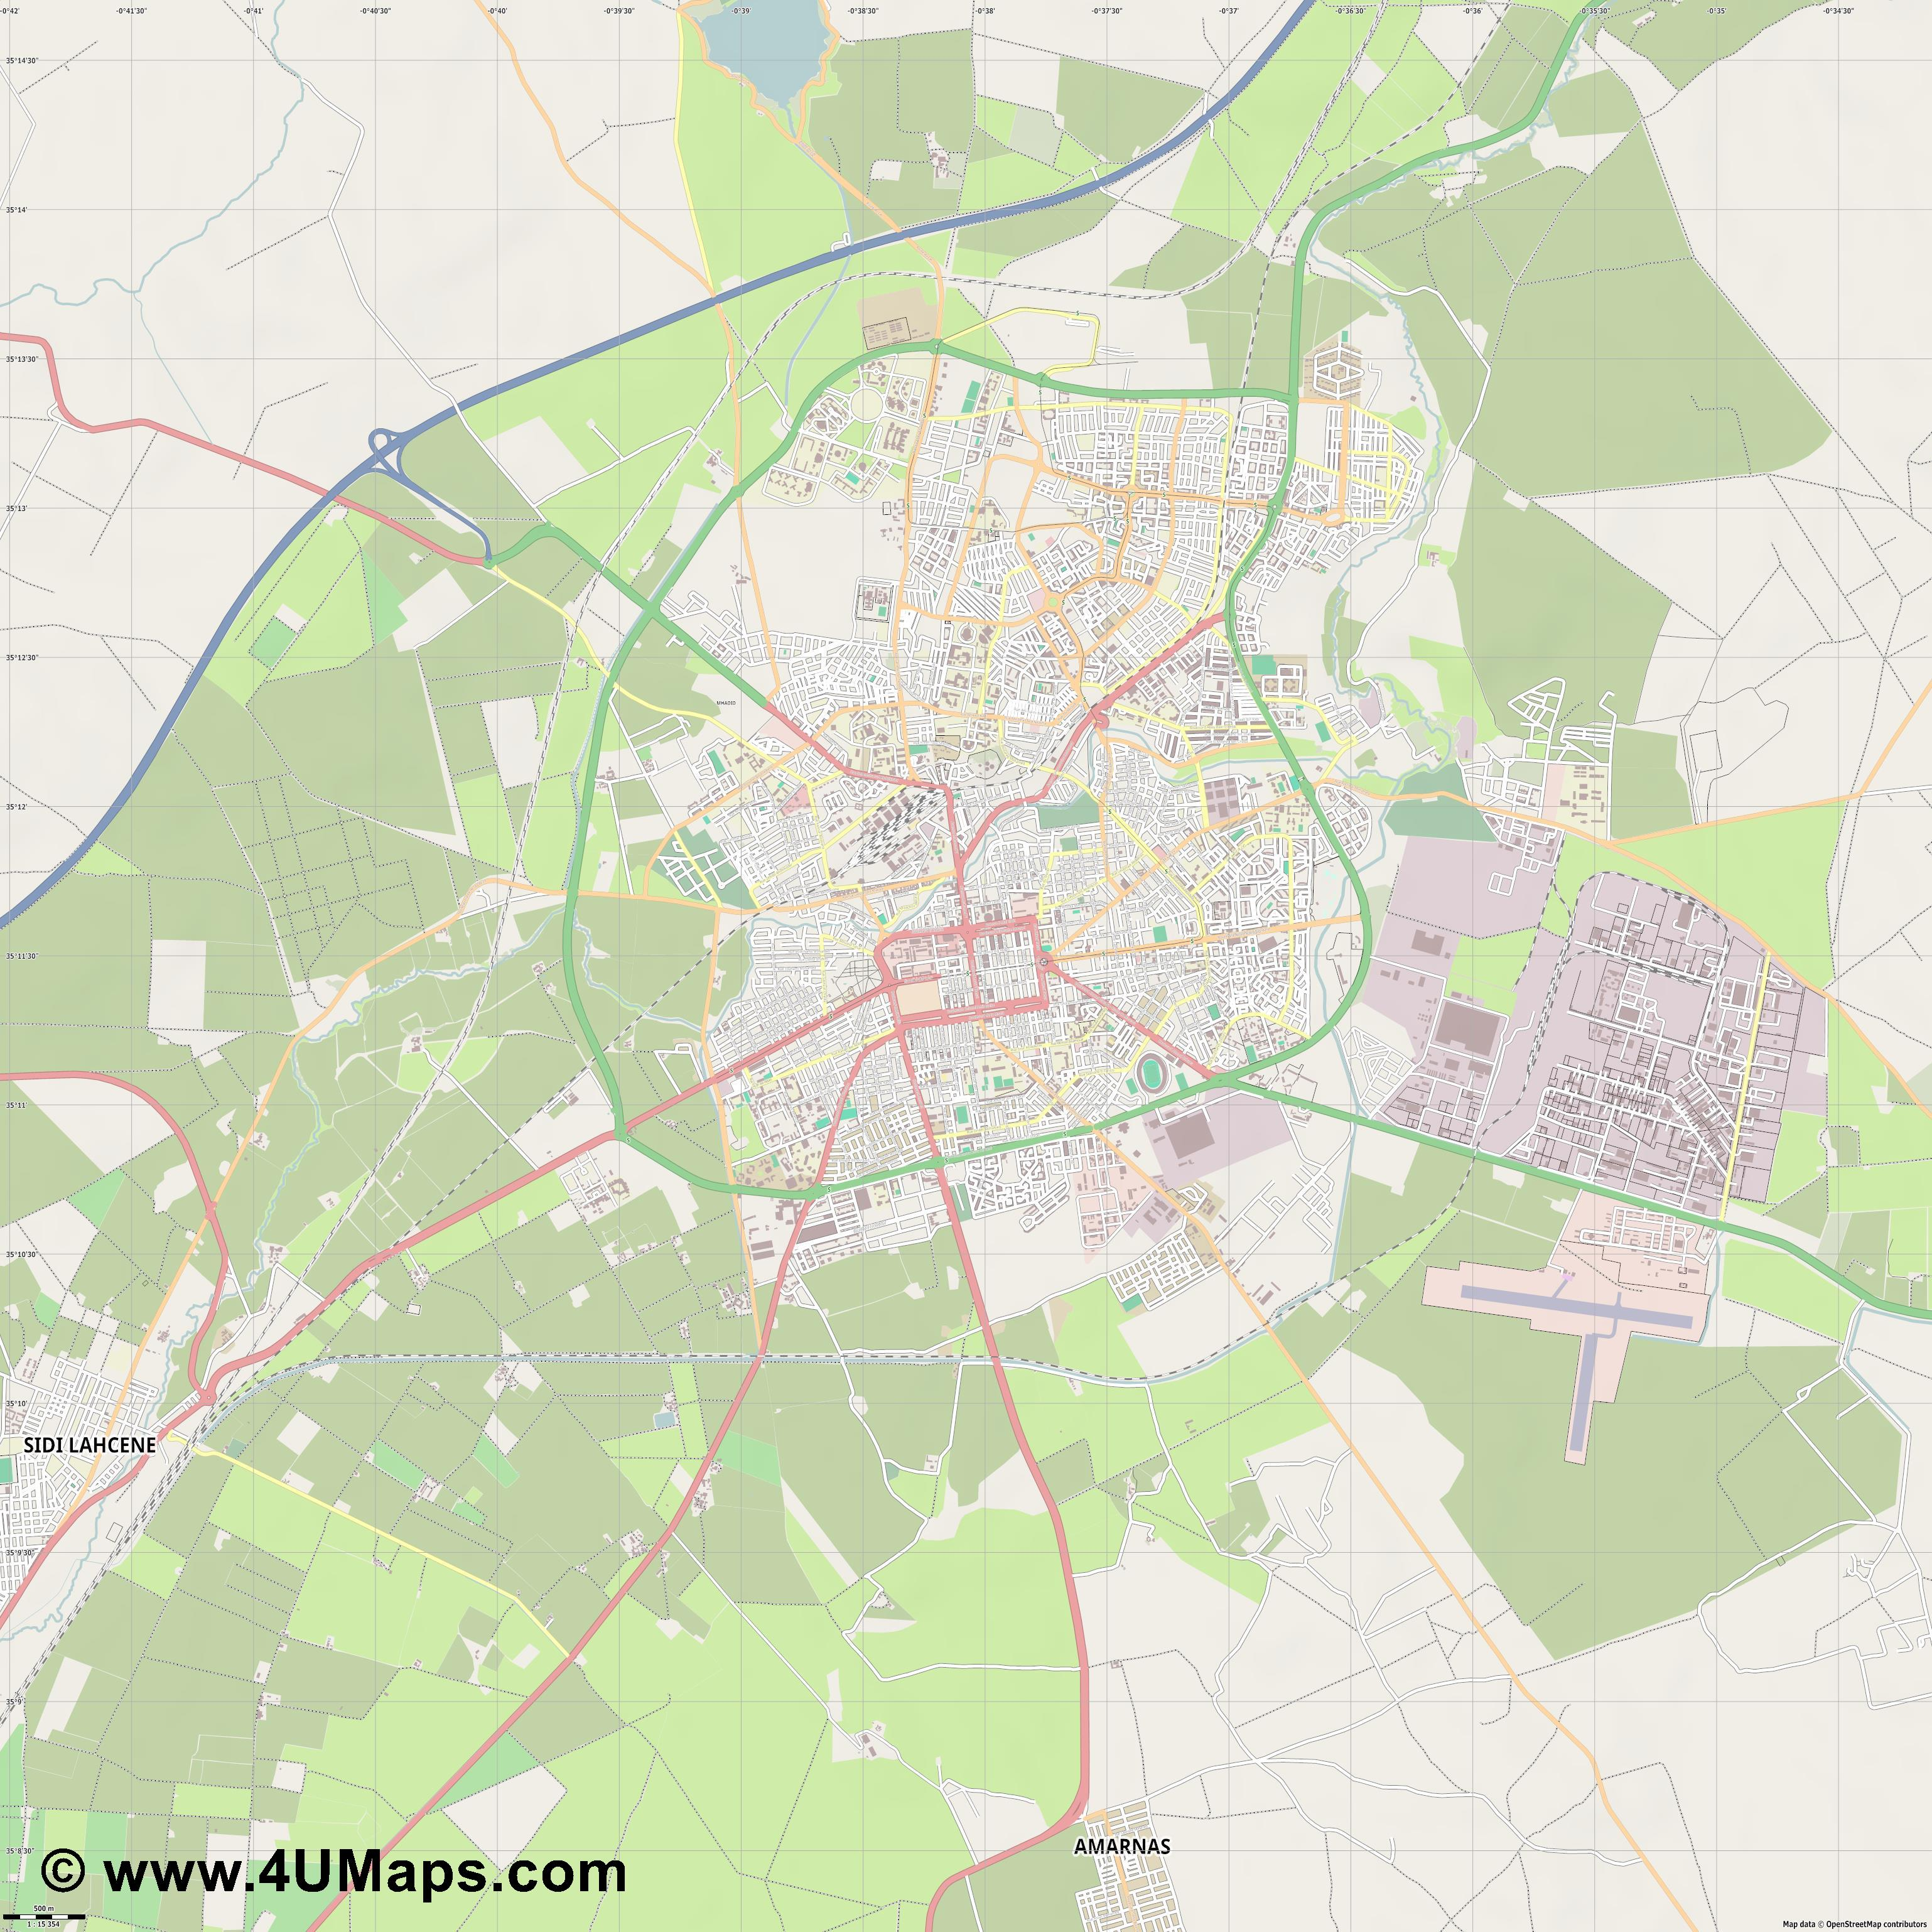 Sidi bel Abbès سيدي بلعباس Sidi Bel Abbès  jpg ultra high detail preview vector city map